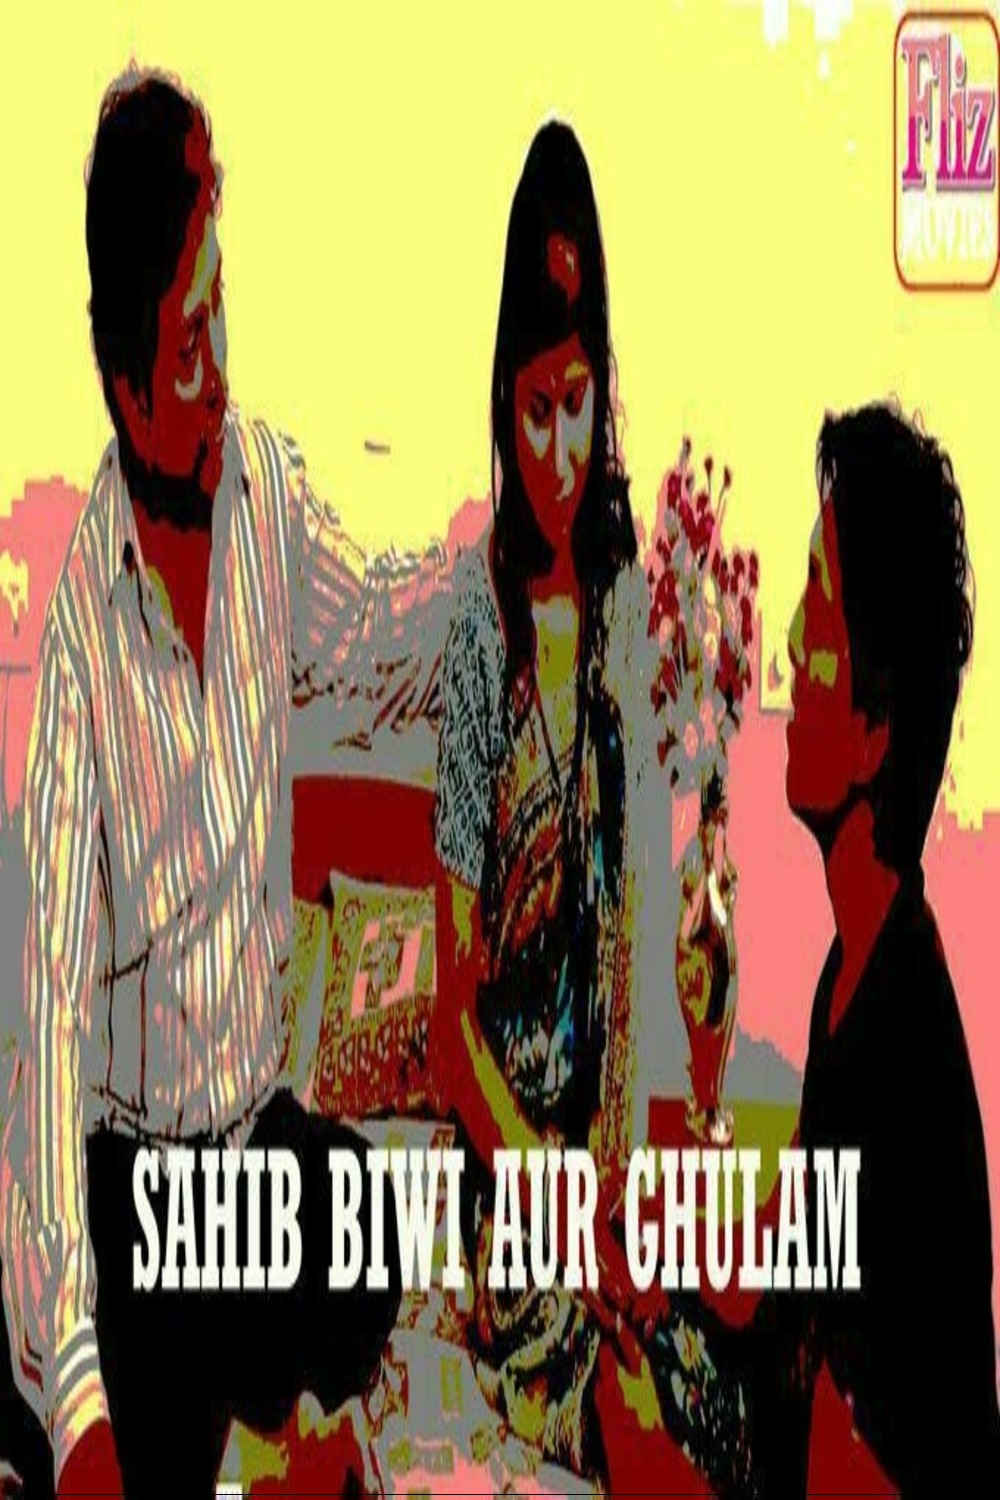 18+ Sahib Biwi Aur Ghulam (2019) Hindi Hot Full Short Film 720p HDRip 250MB MKV